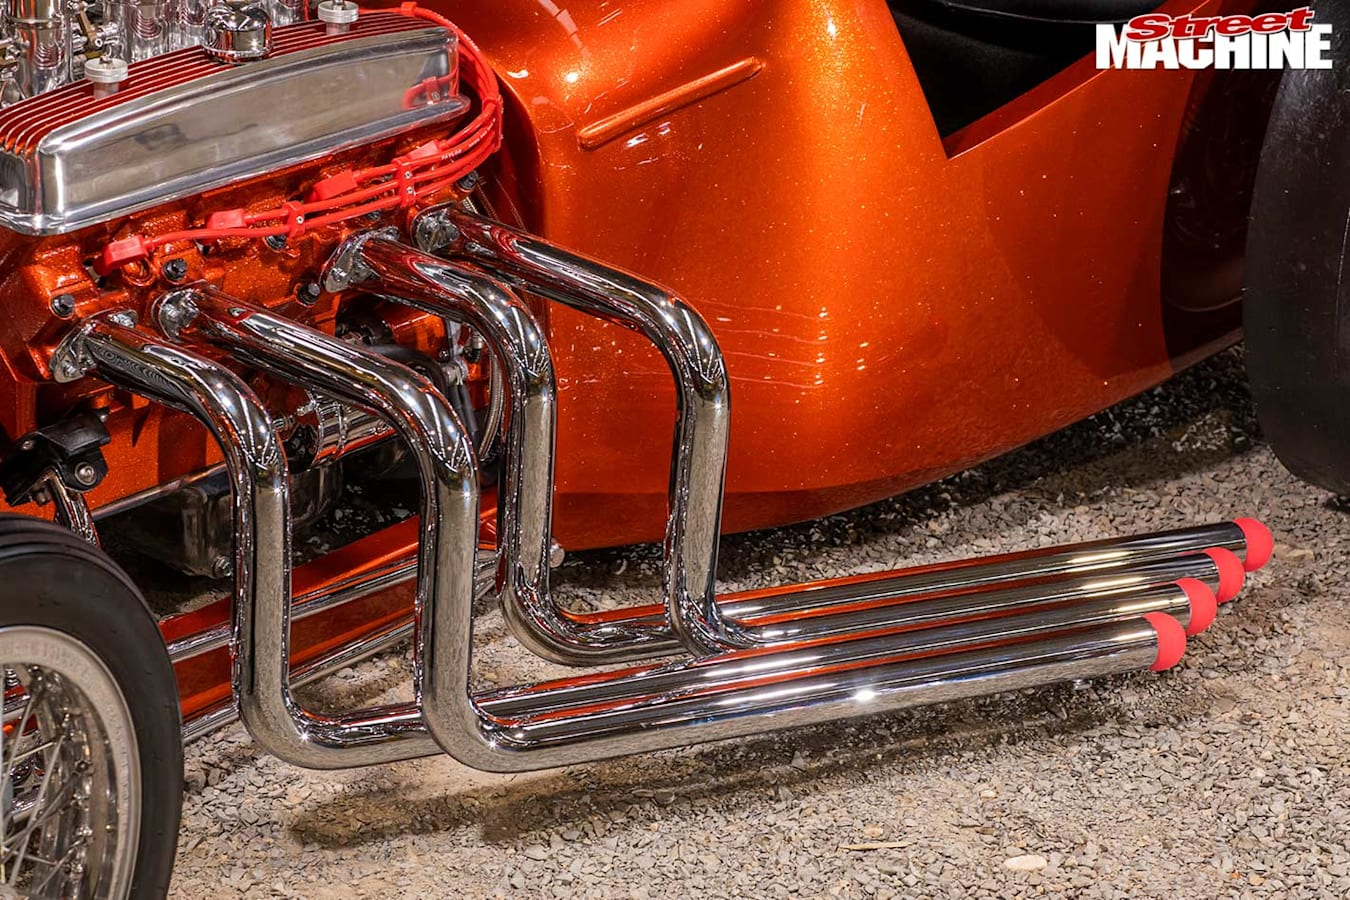 Ford Model T exhaust